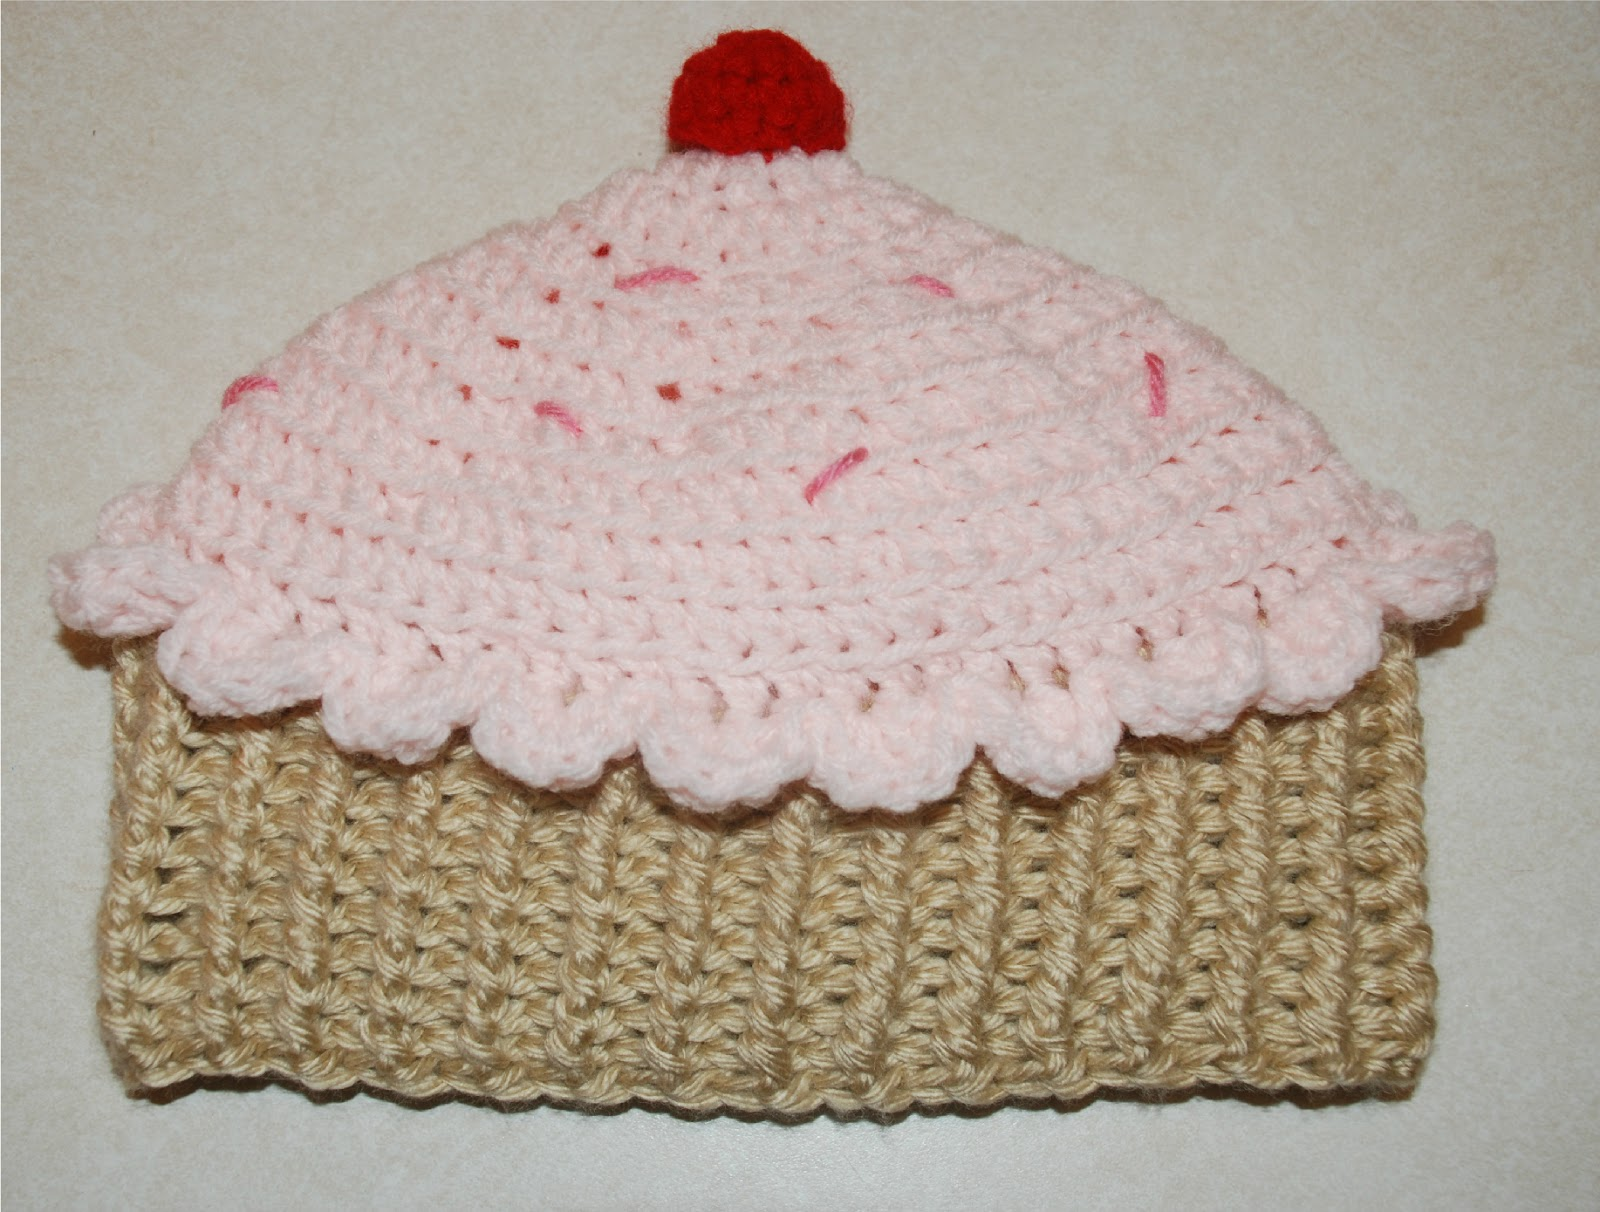 Crochet pattern for baby cupcake hat dancox for amys crochet creative creations crochet cupcake hat all bankloansurffo Images